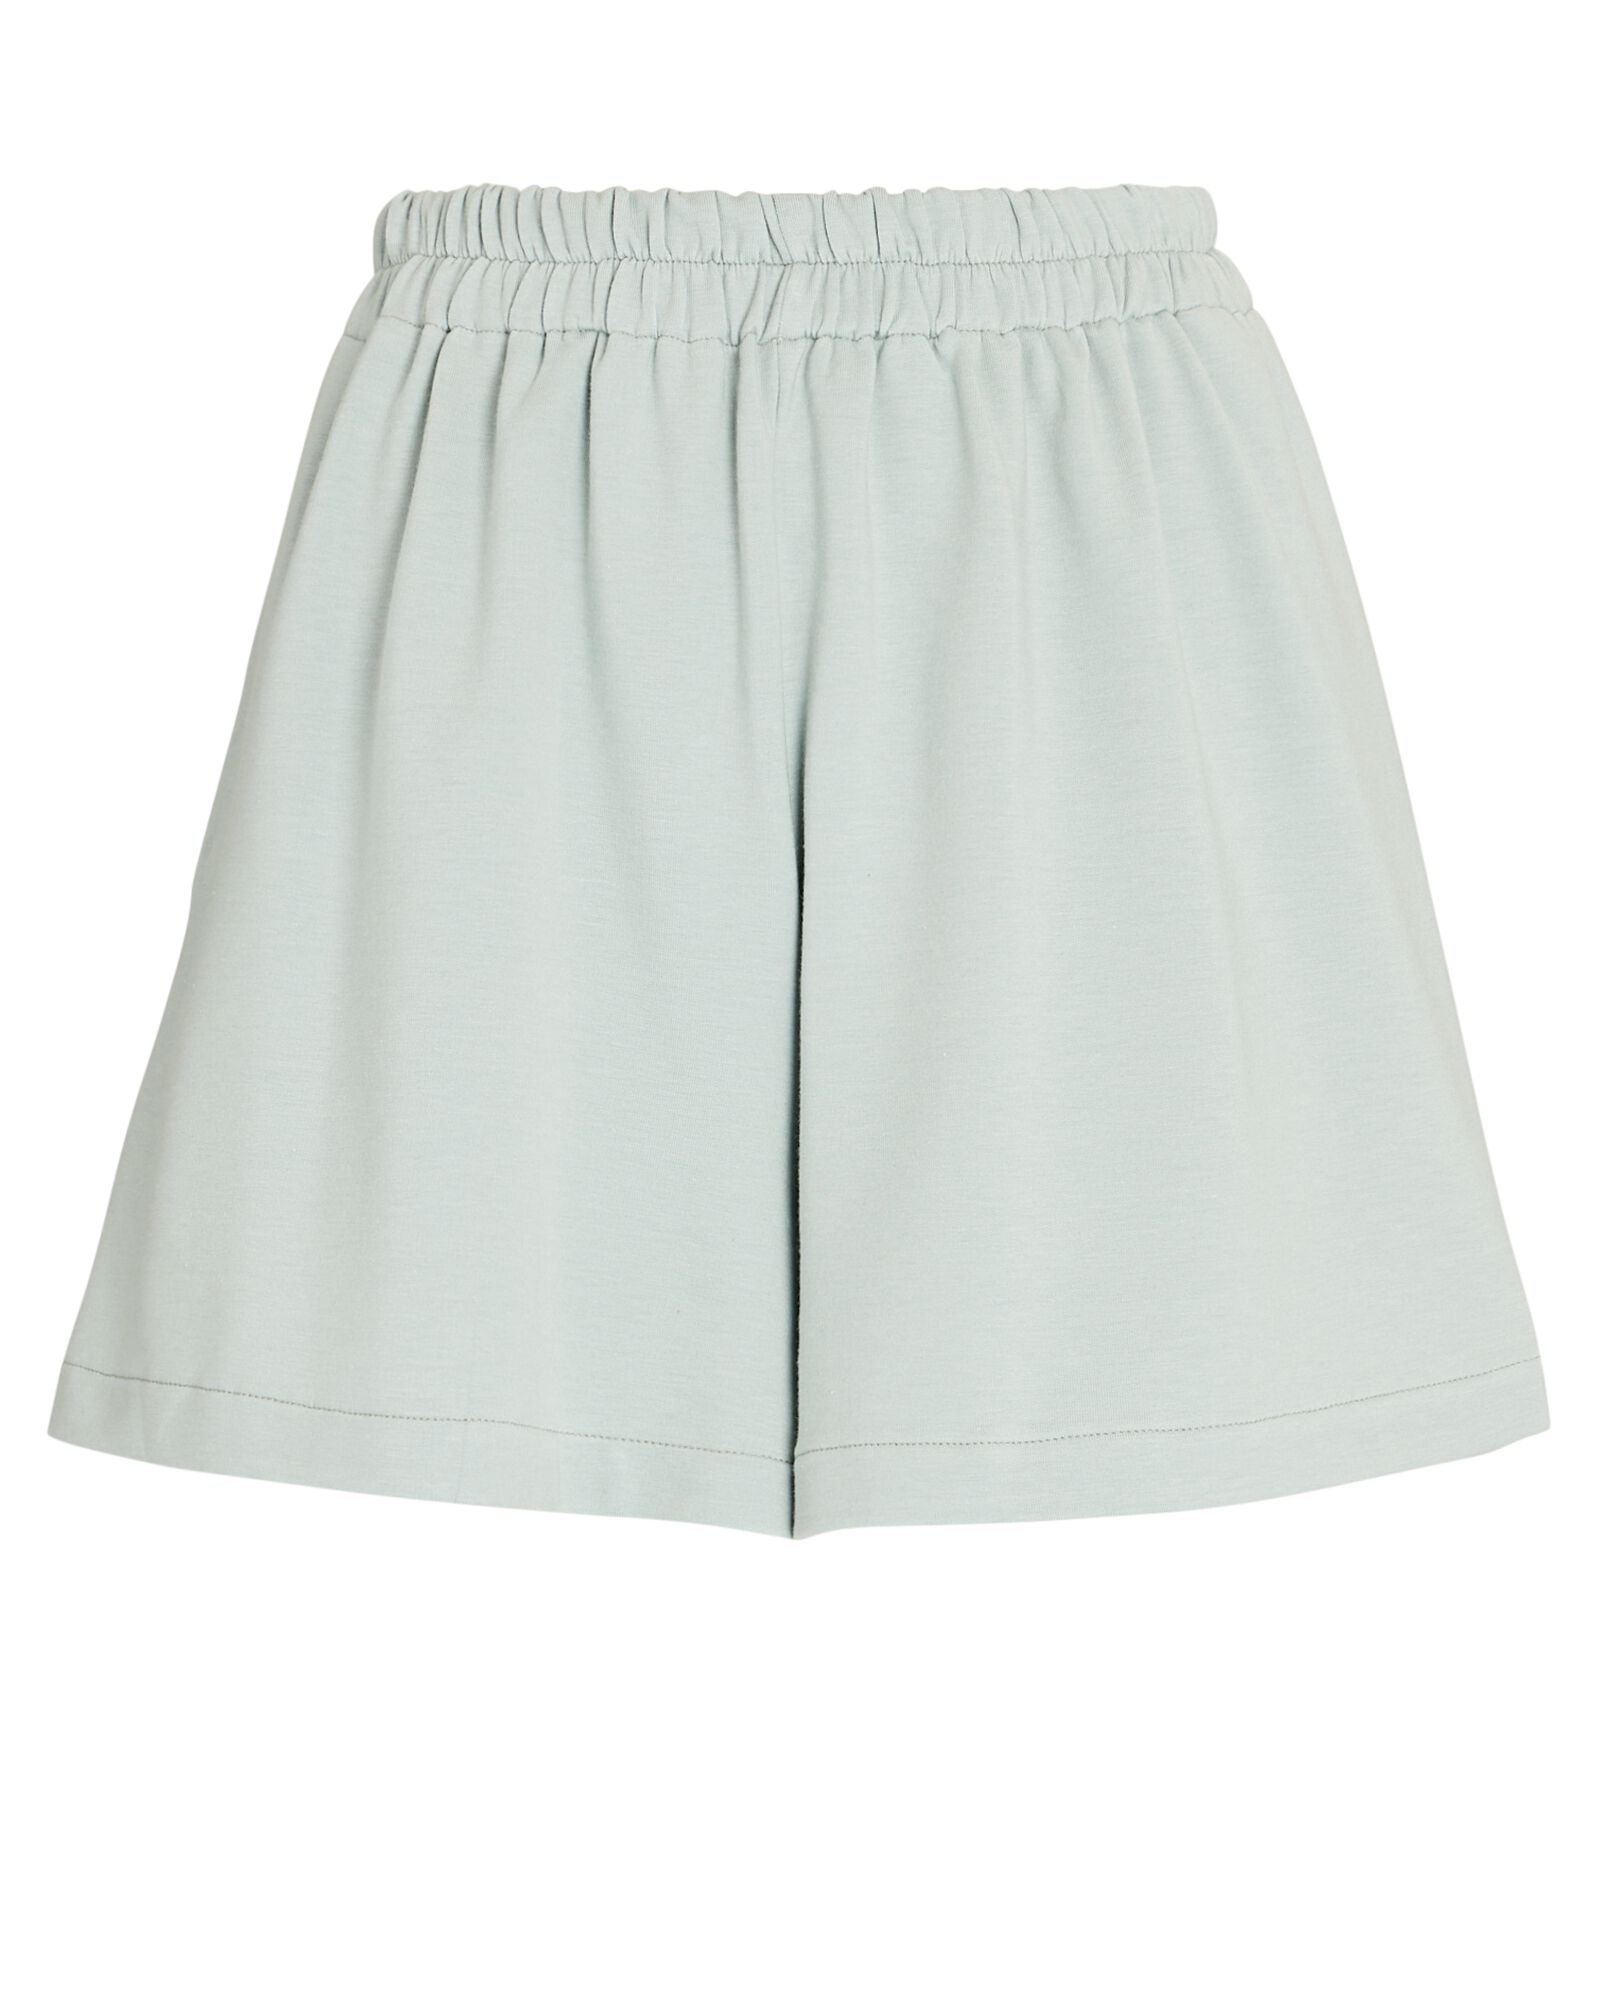 French Terry Sweat Shorts, GREEN-LT, hi-res